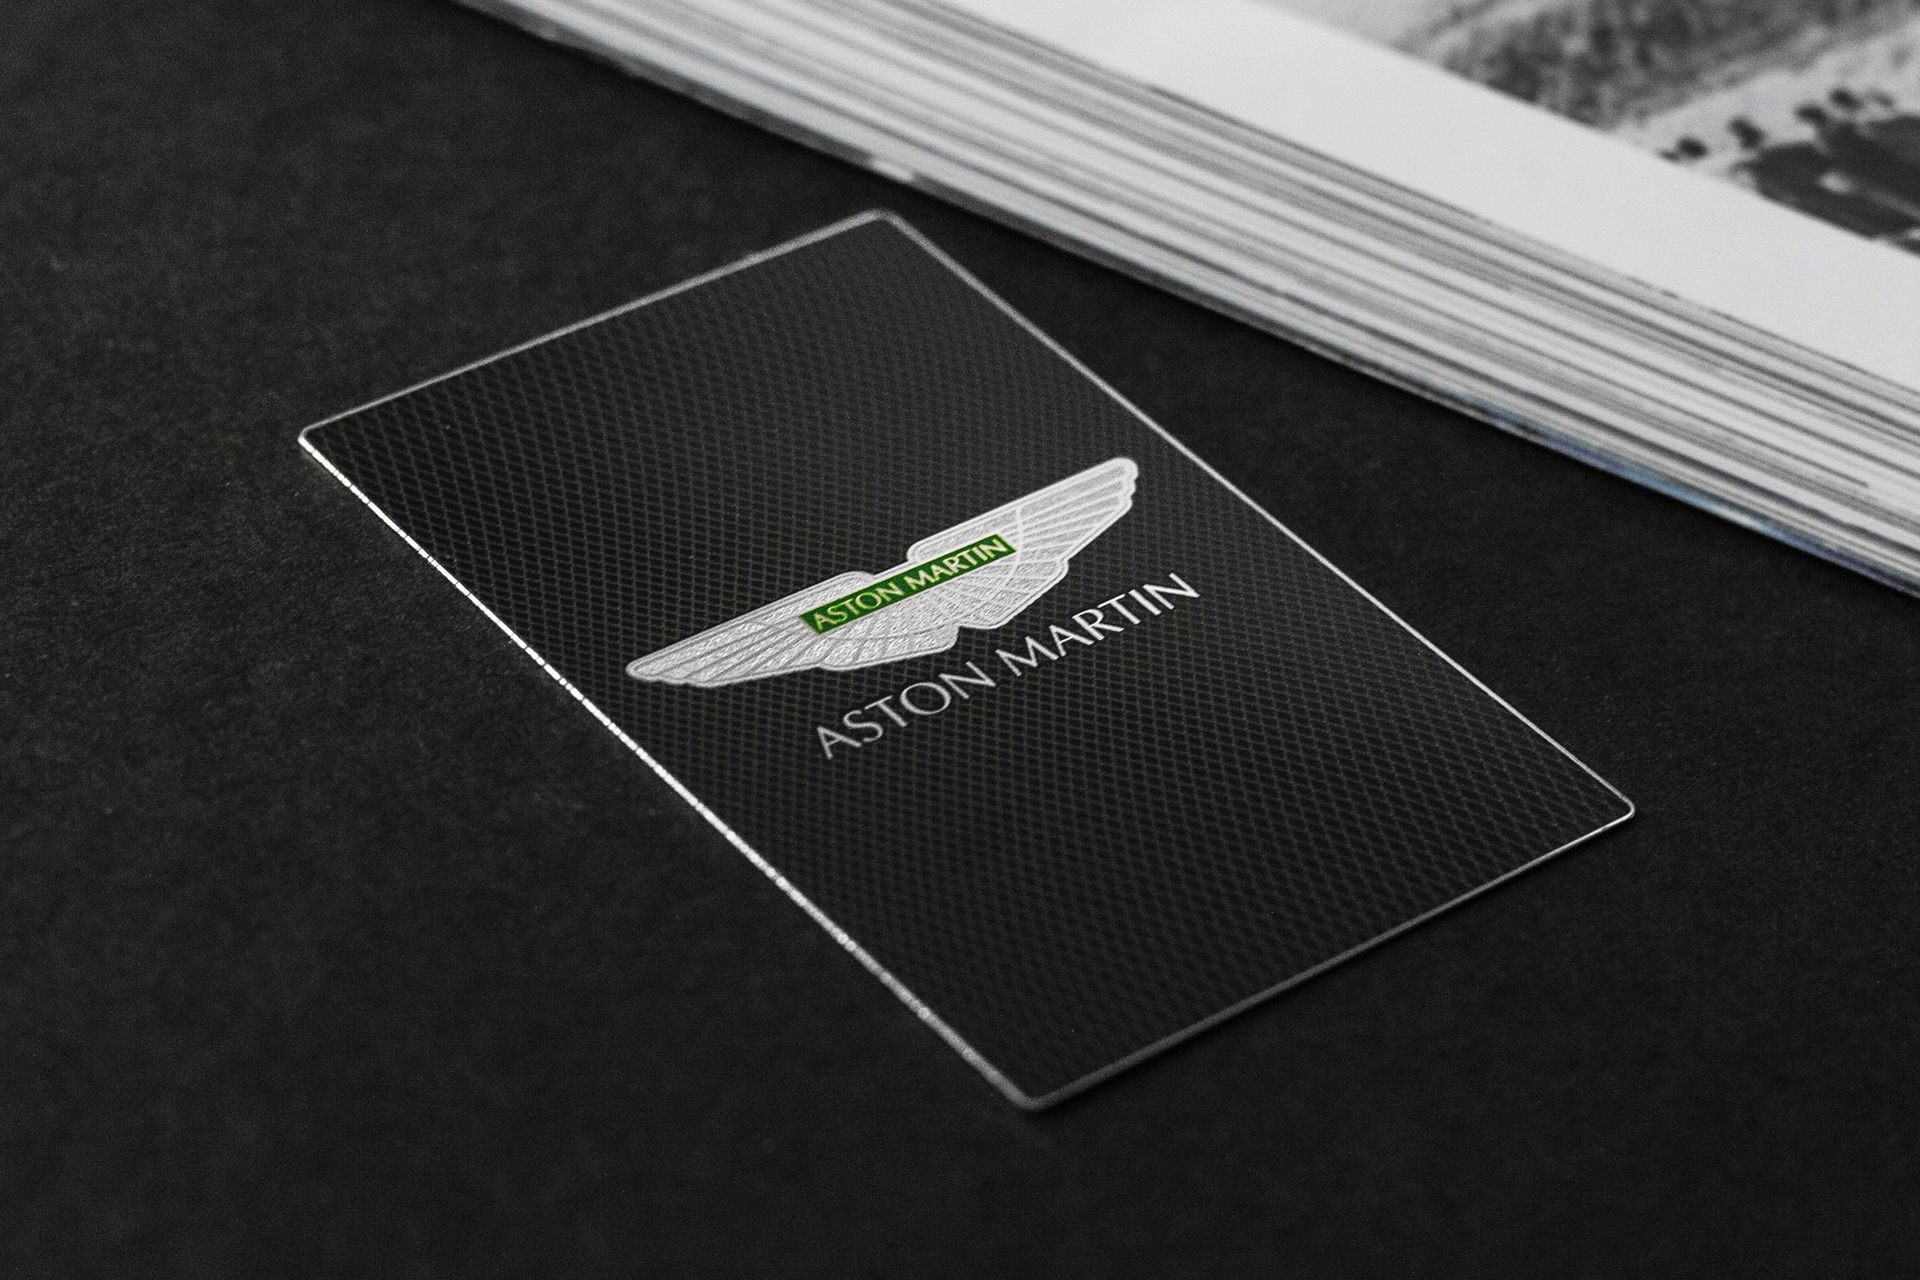 silver metal business card for the british car brand aston martin